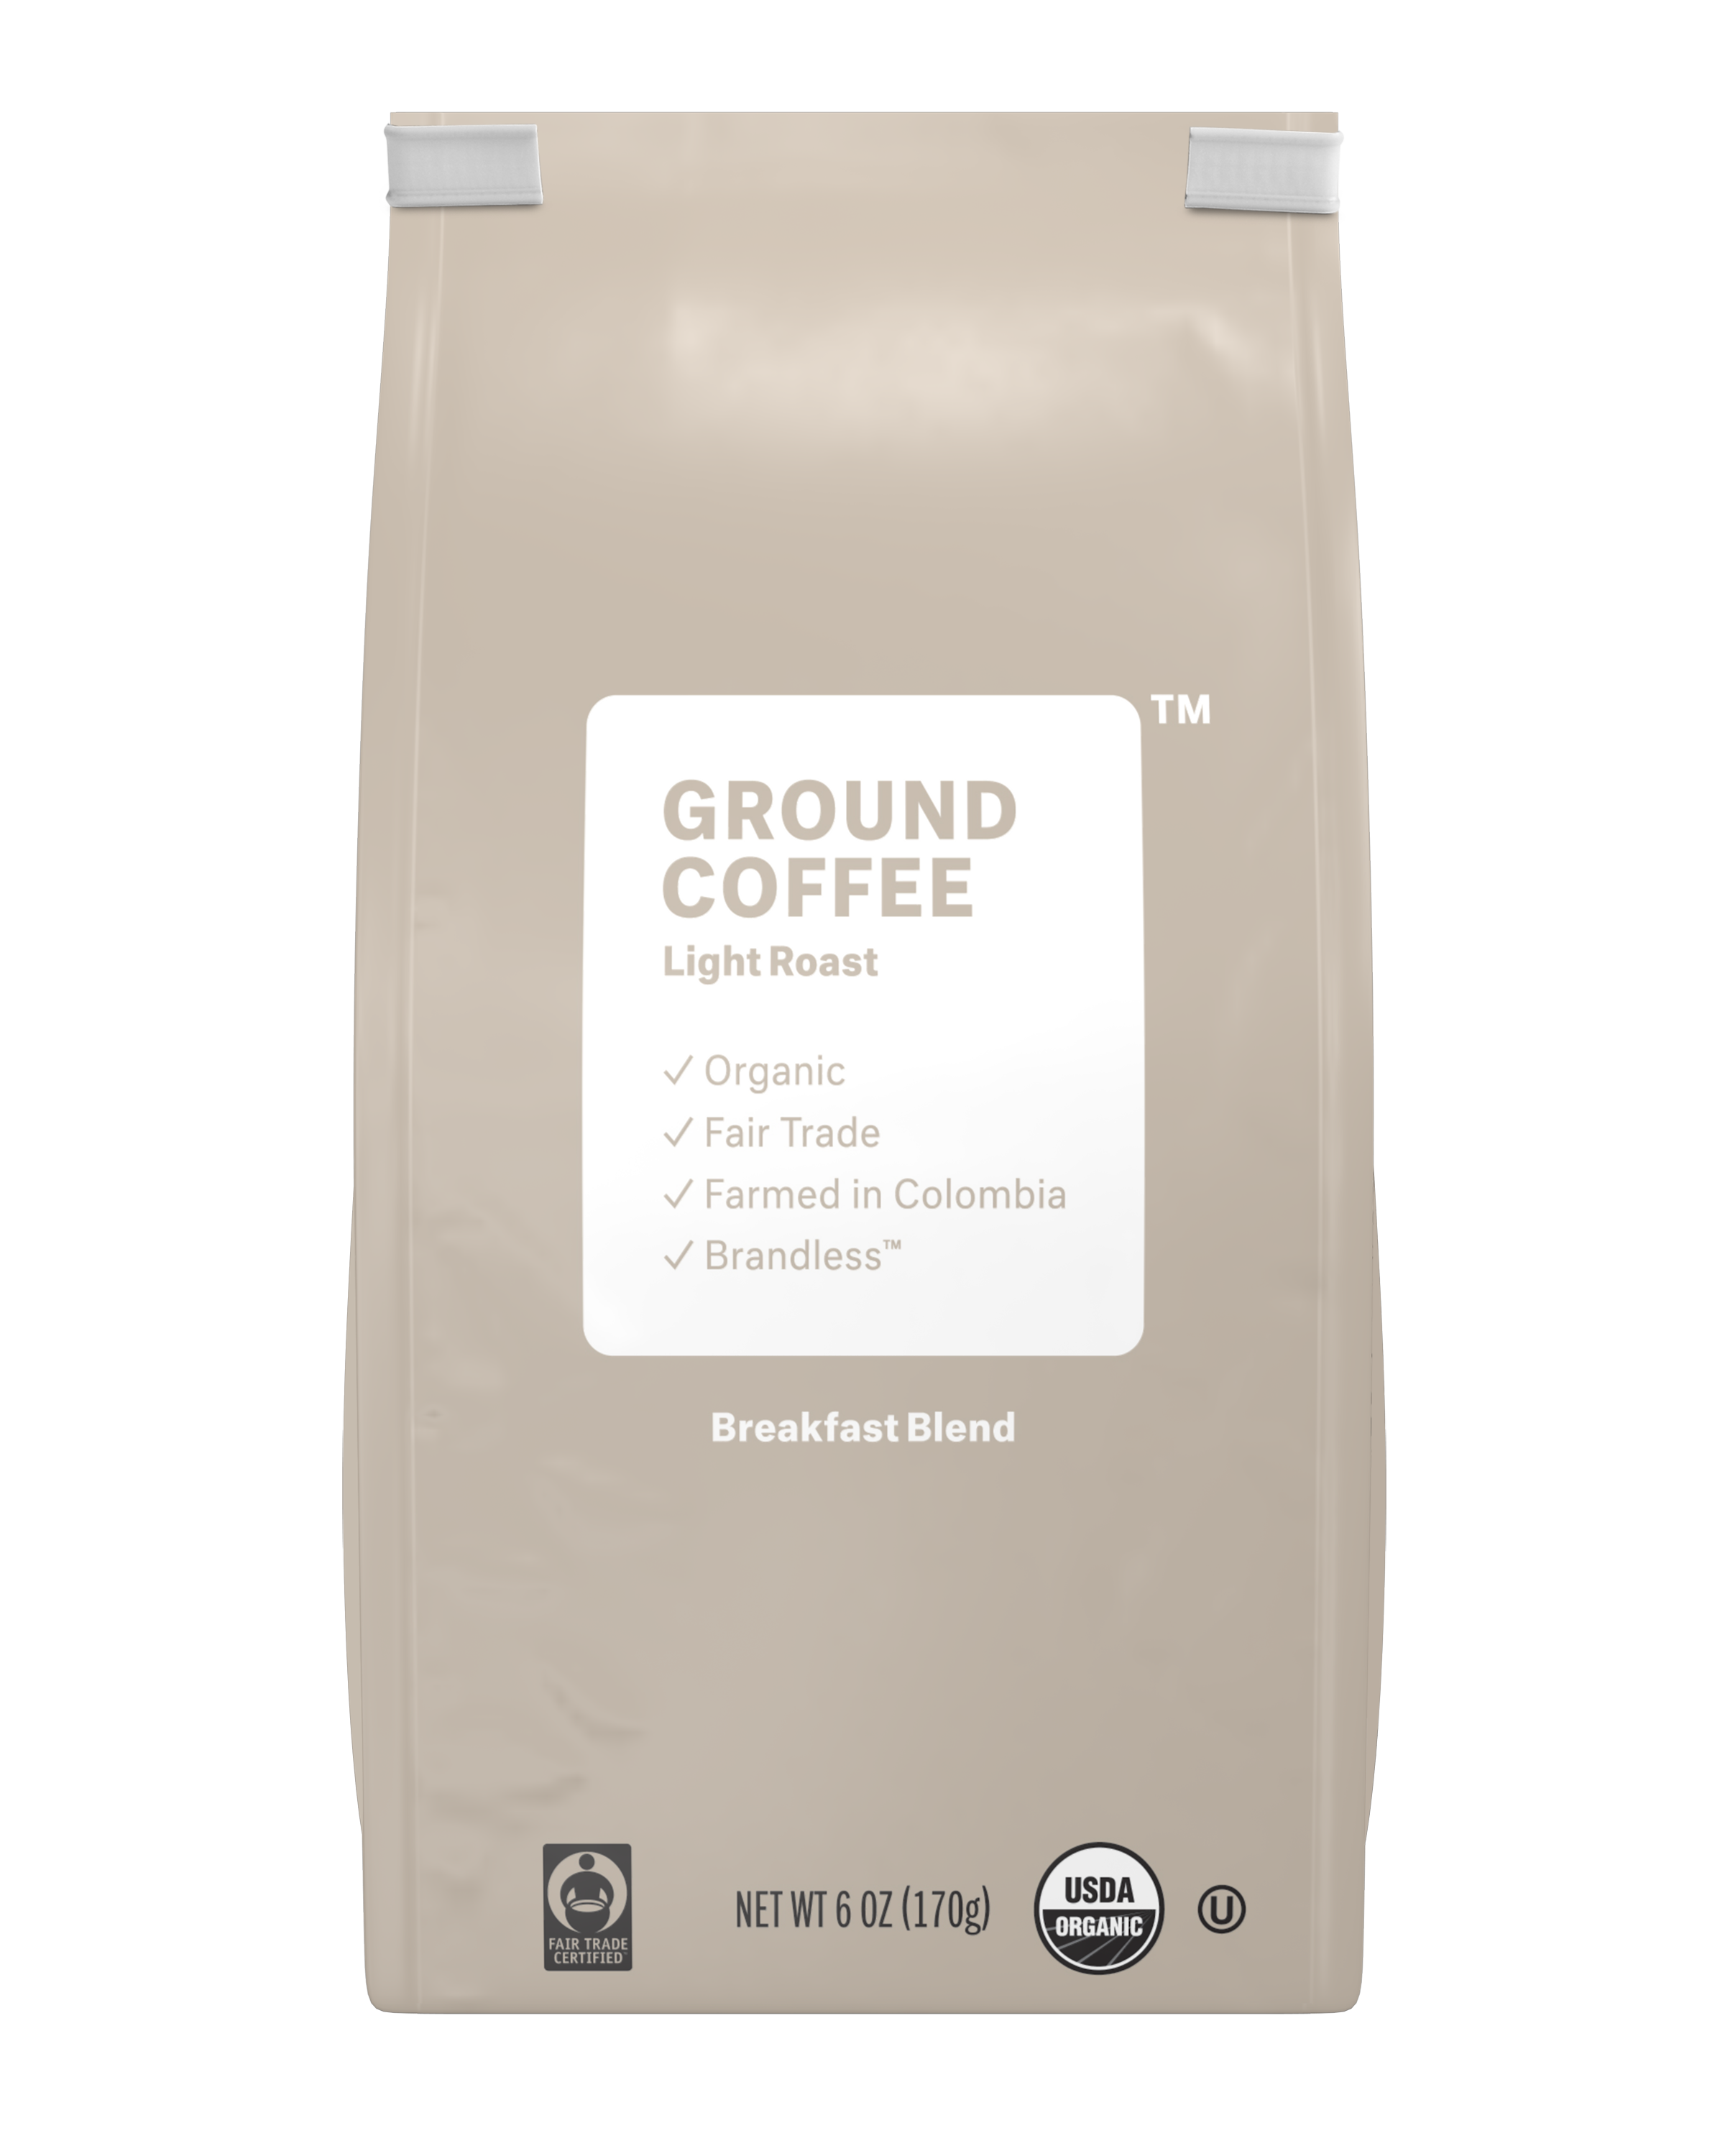 Brandless: Ground Coffee, Light Roast